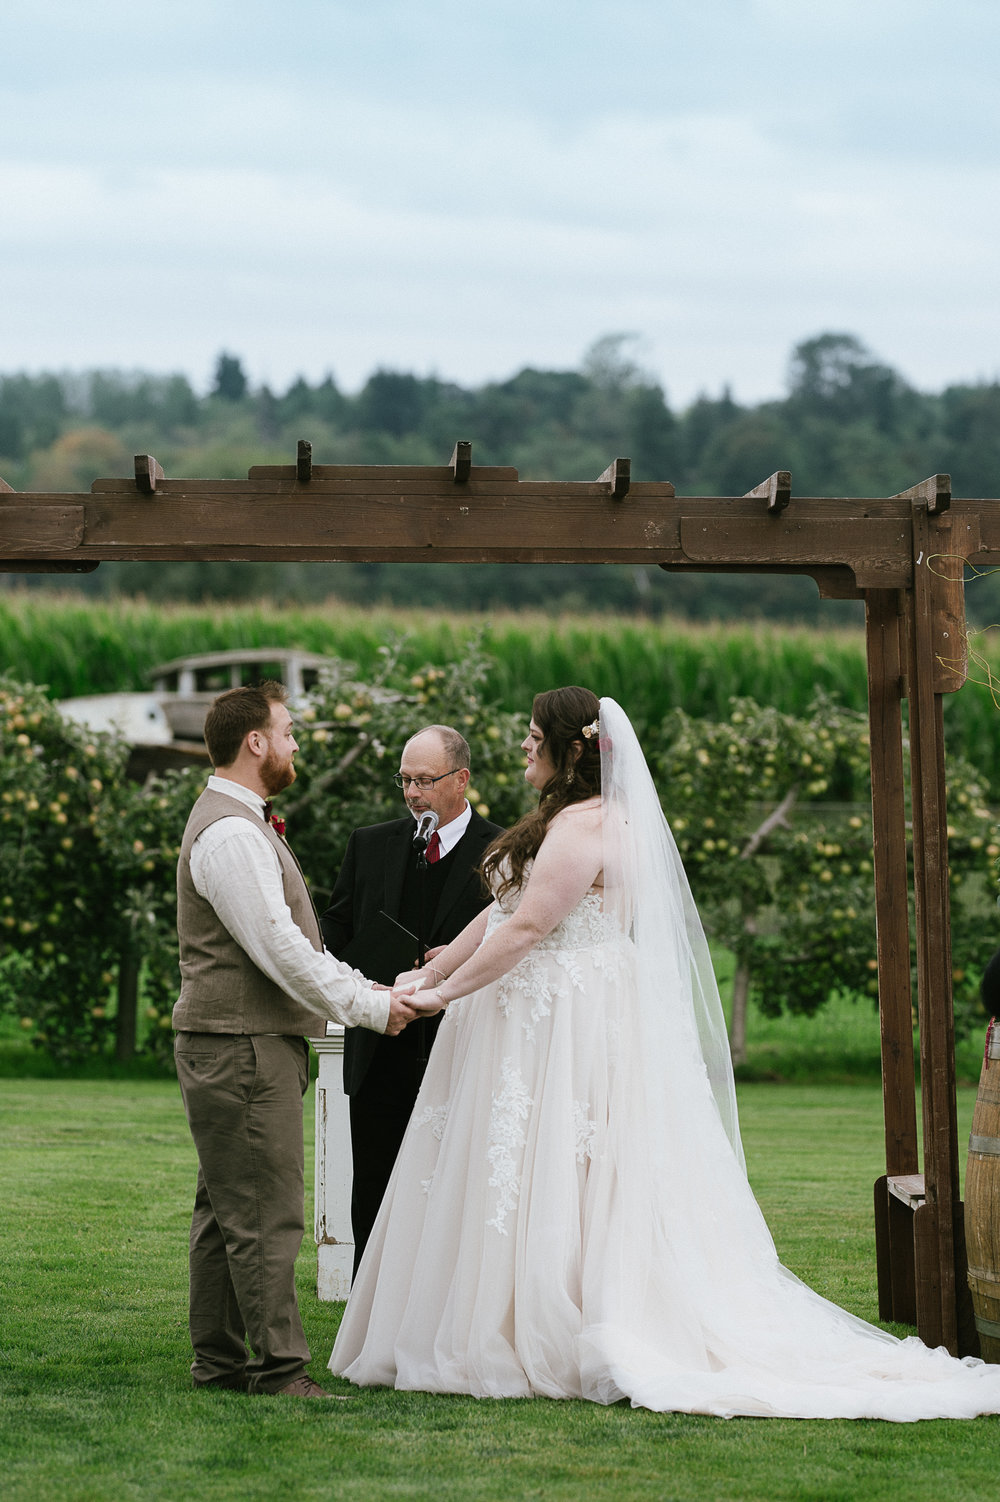 Swan Trail Farm Wedding_Sarah Schurman + Brian Skadan_Snohomish Wedding_Kelsey Lane Photography-6072.jpg